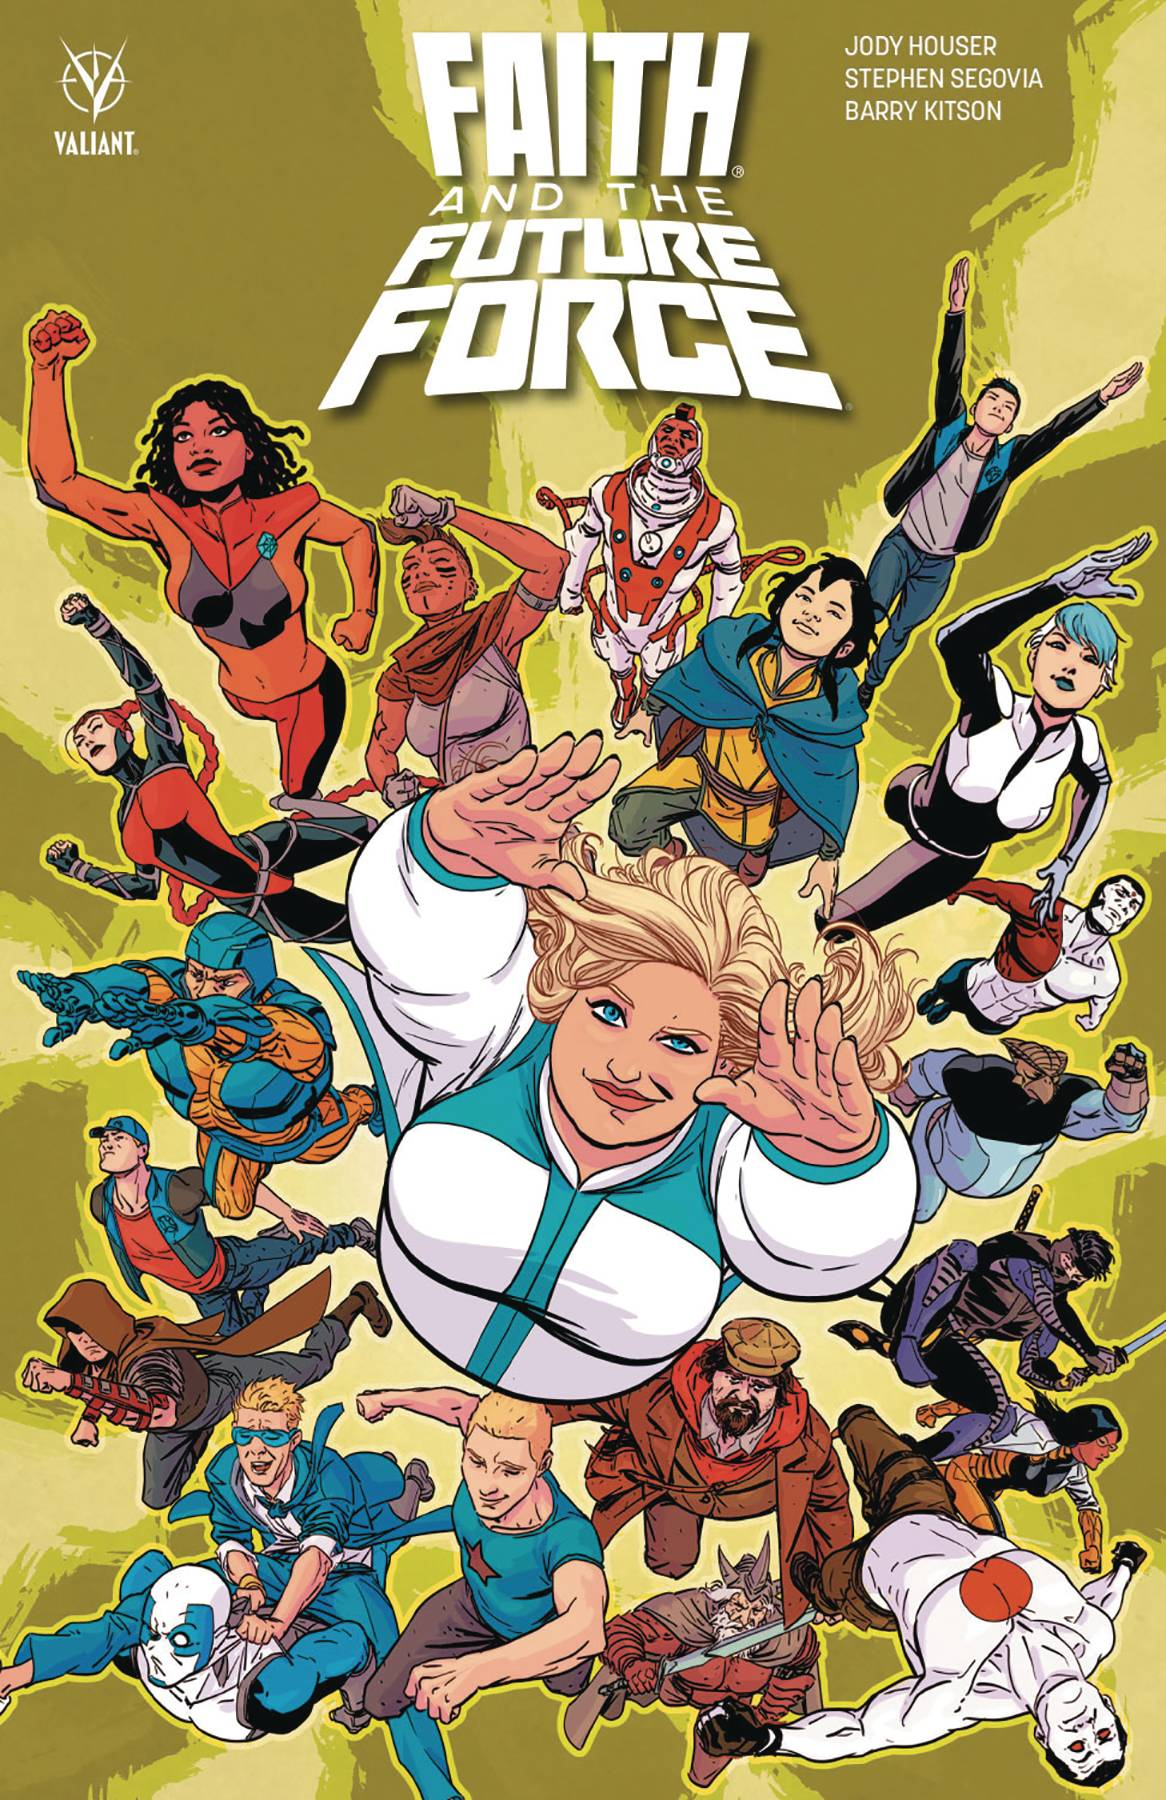 Faith And The Future Force TPB